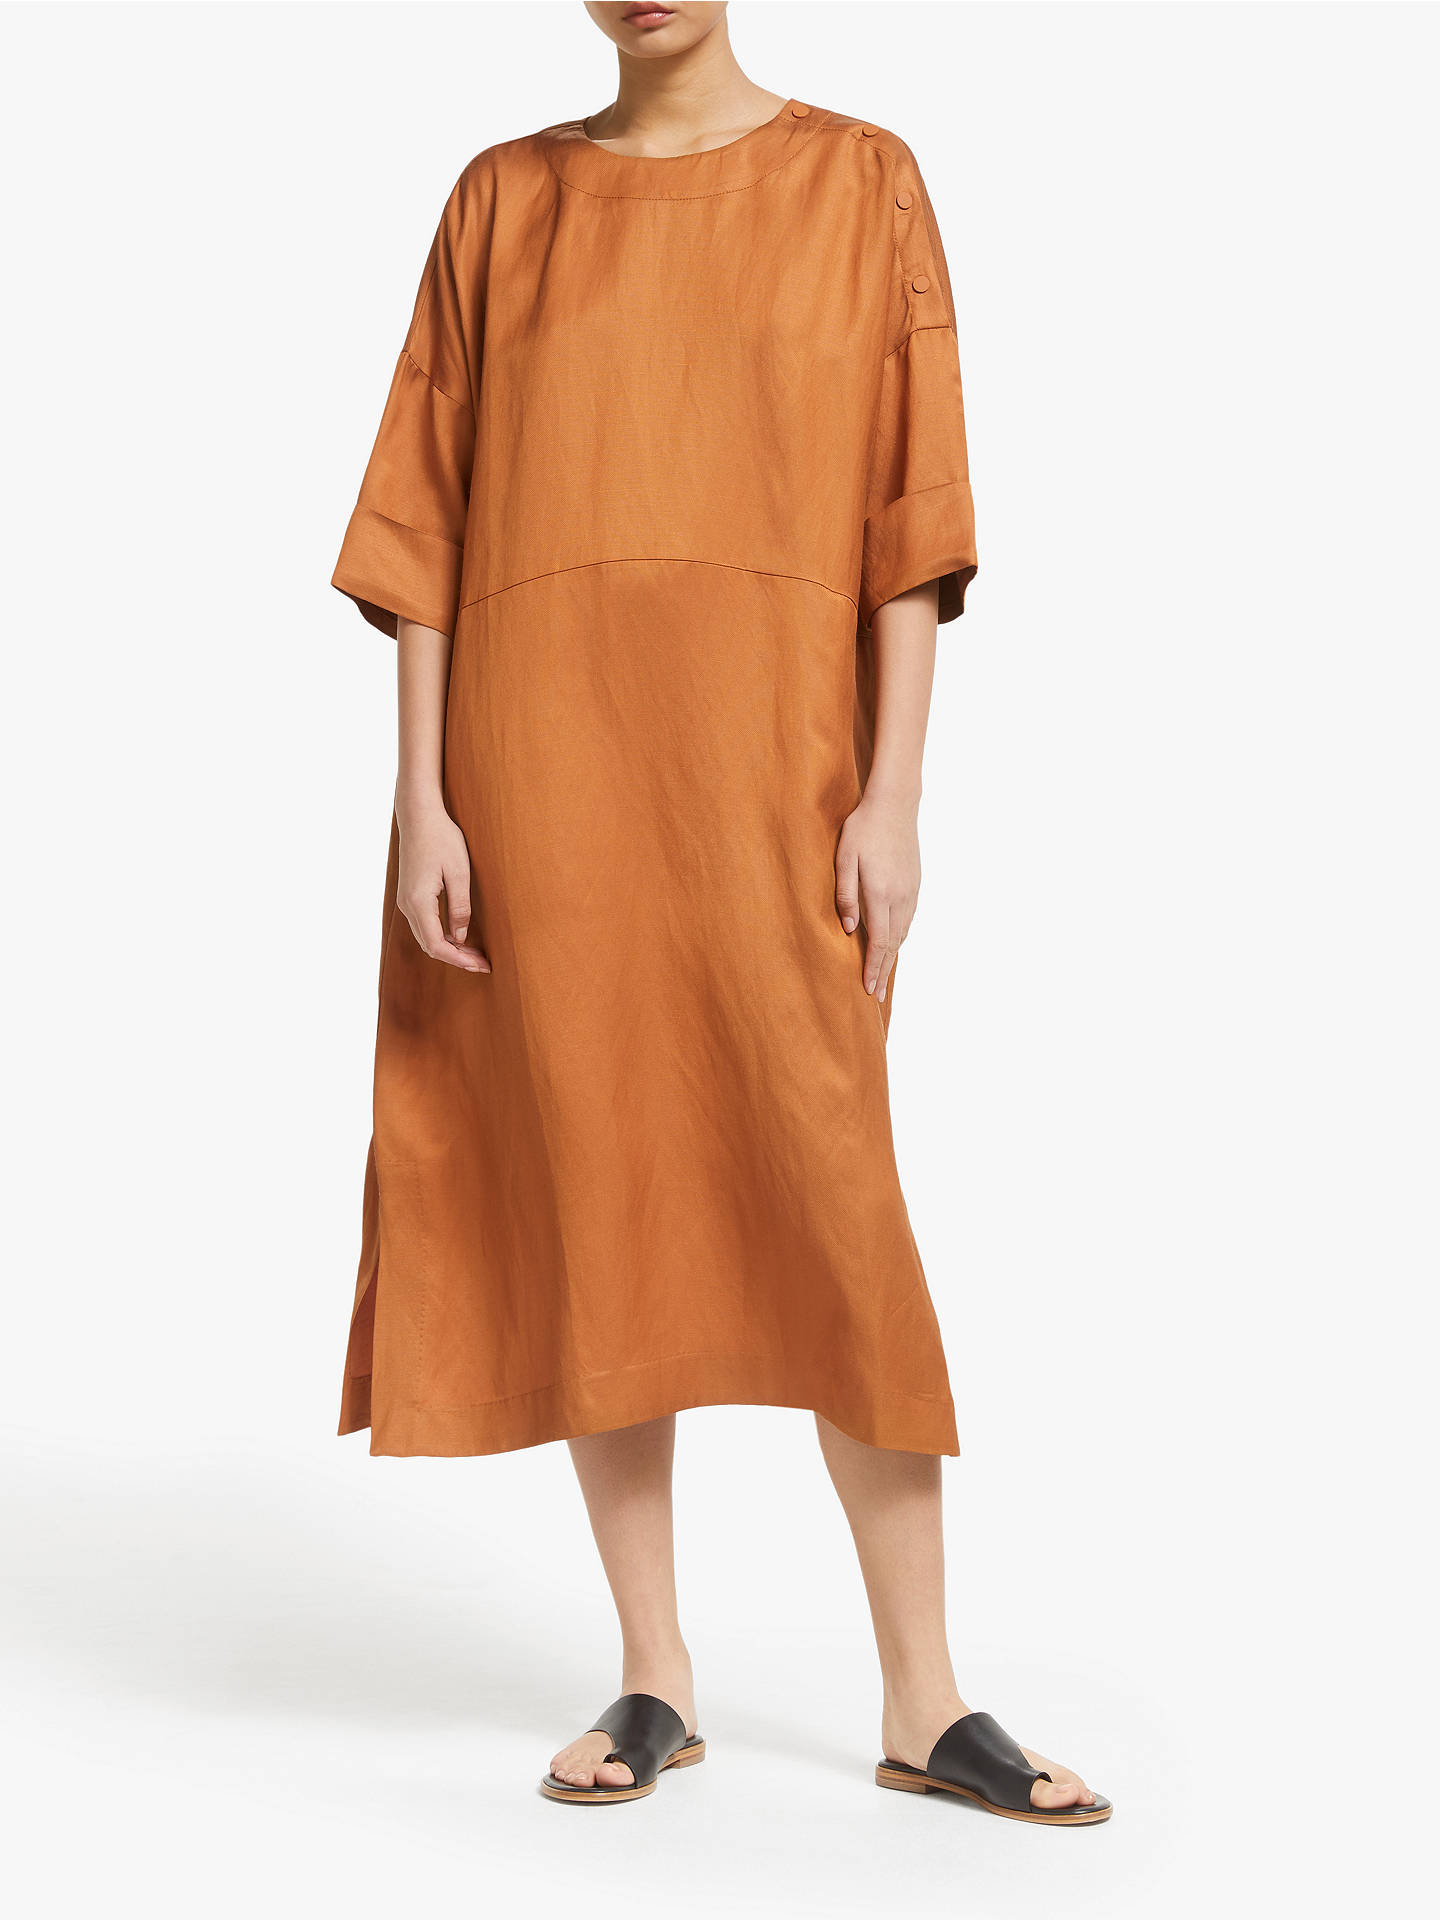 Kin Easy T Shirt Dress, Orange by Kin